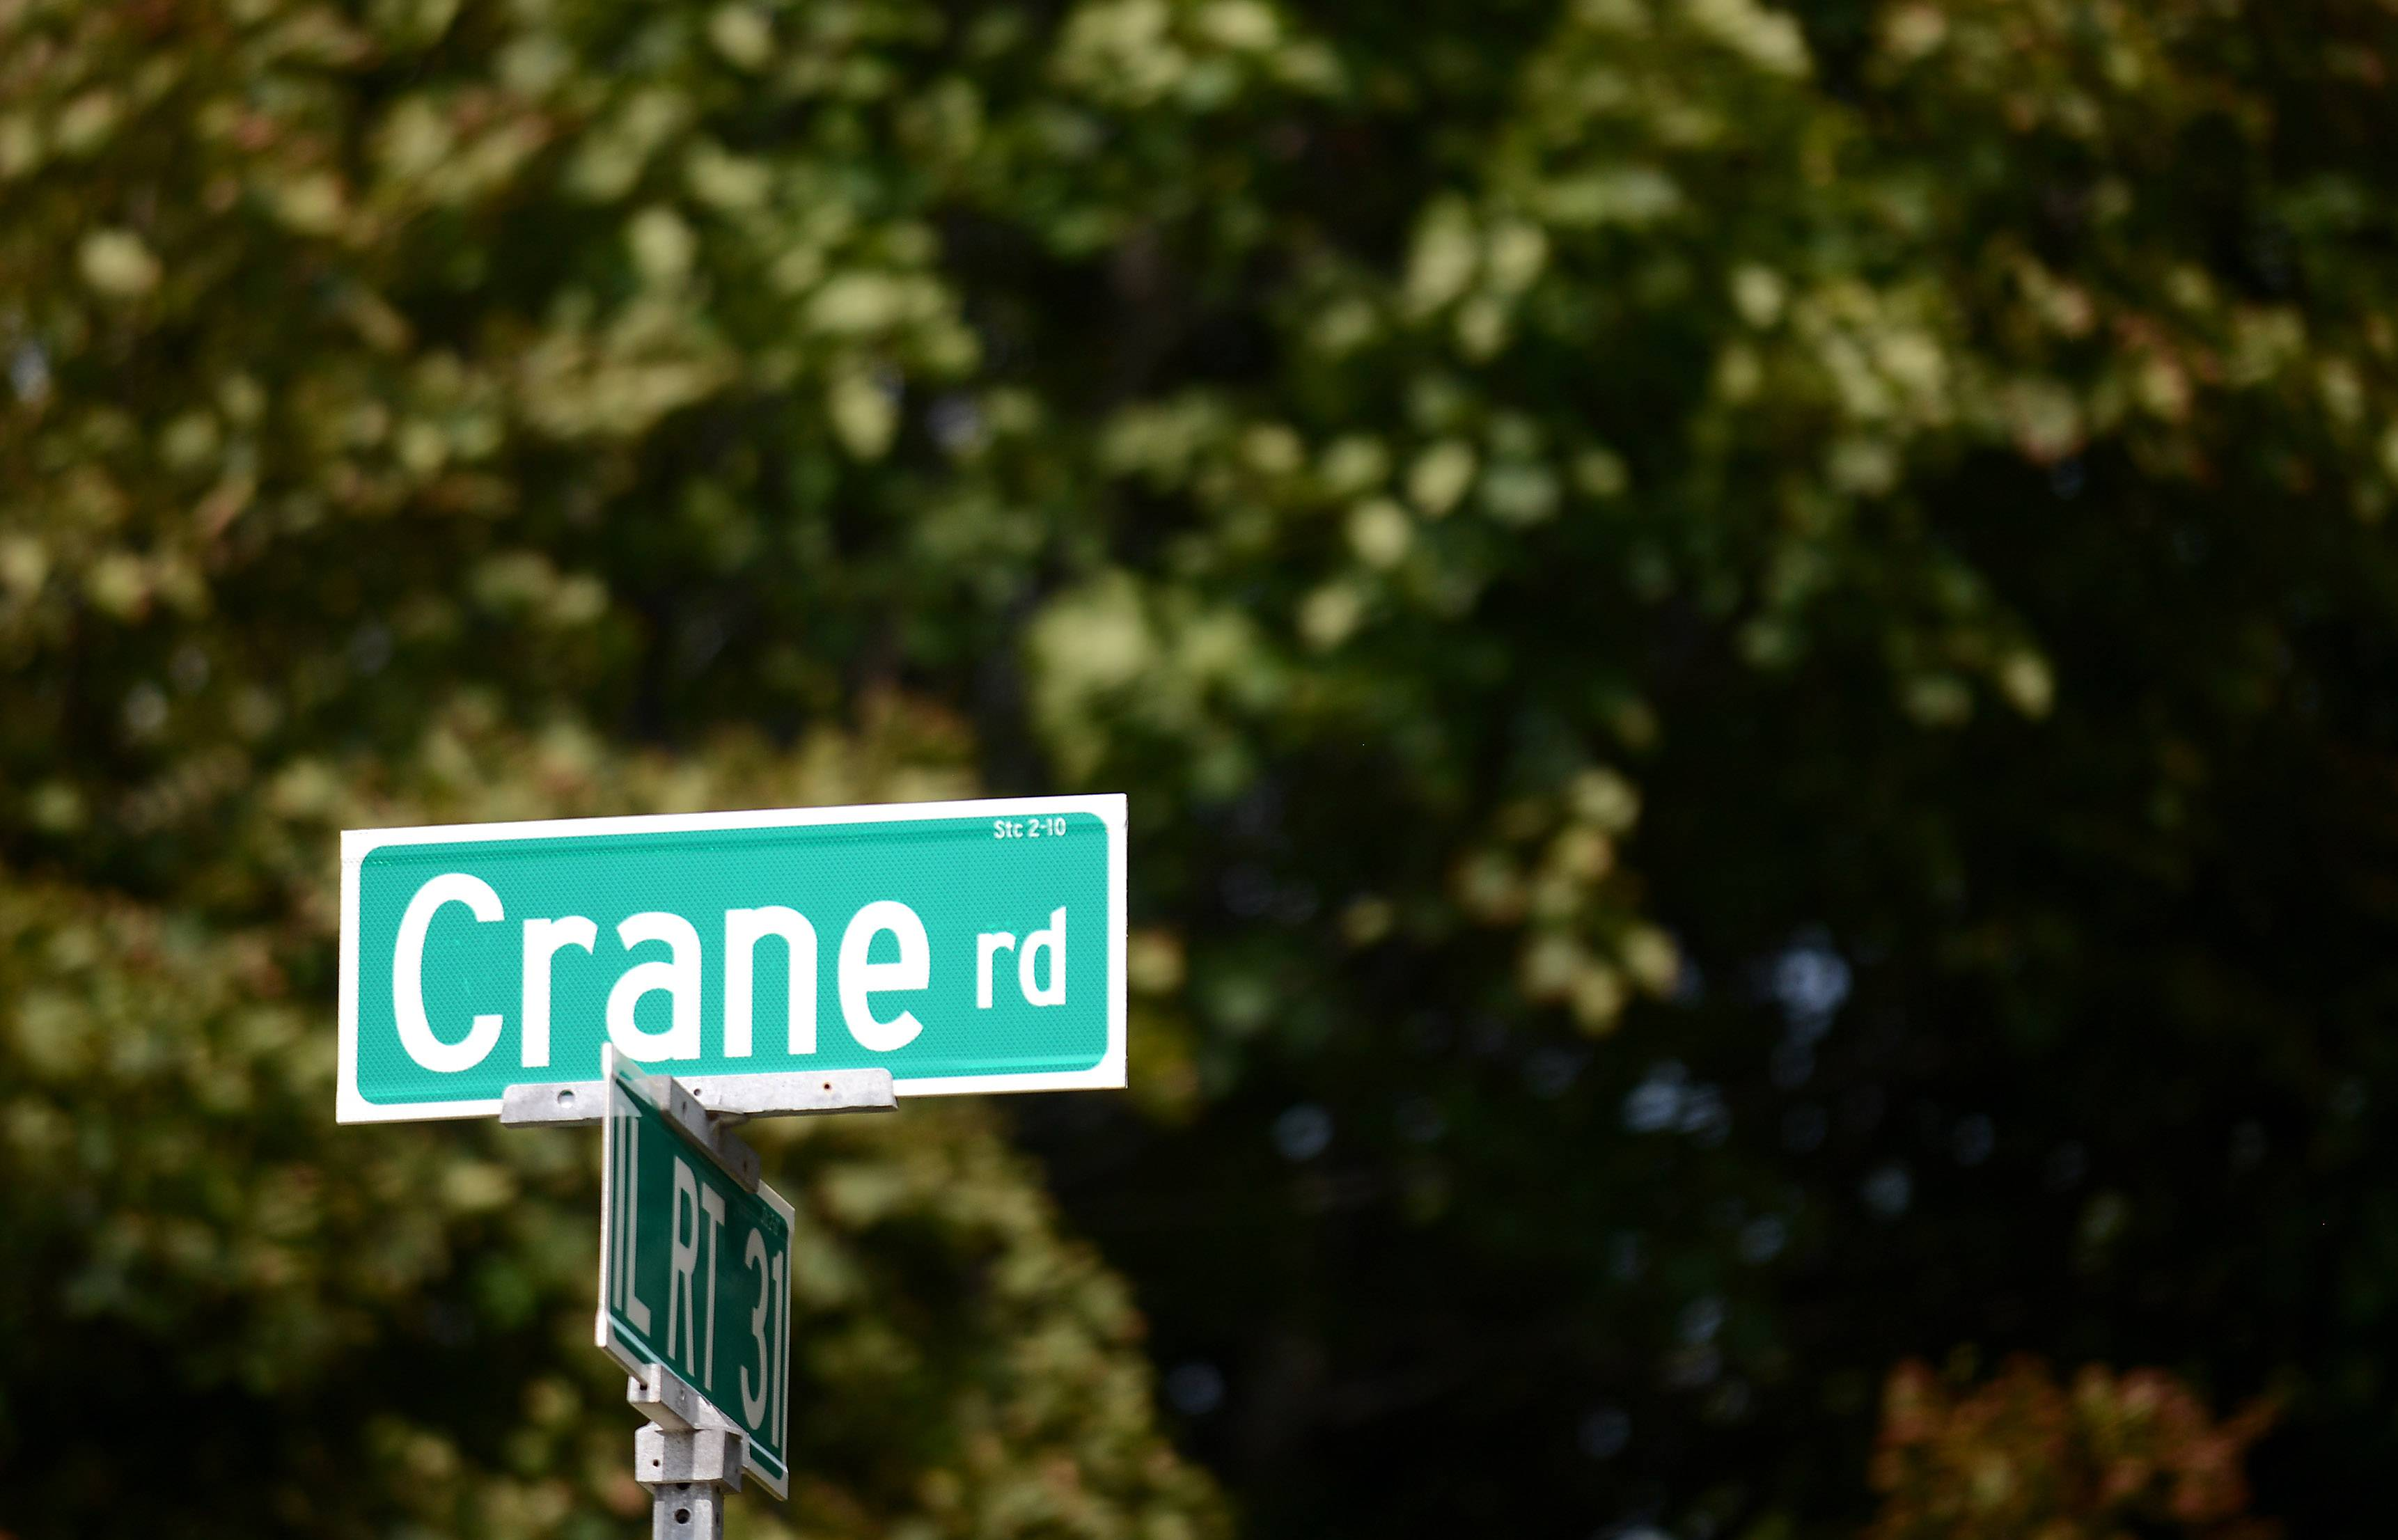 Crane Road in St. Charles was named after Herbert Crane, an heir to the Crane Plumbing Co. of Chicago. He owned property on the west side of Route 31 and south of what is now Crane Road.